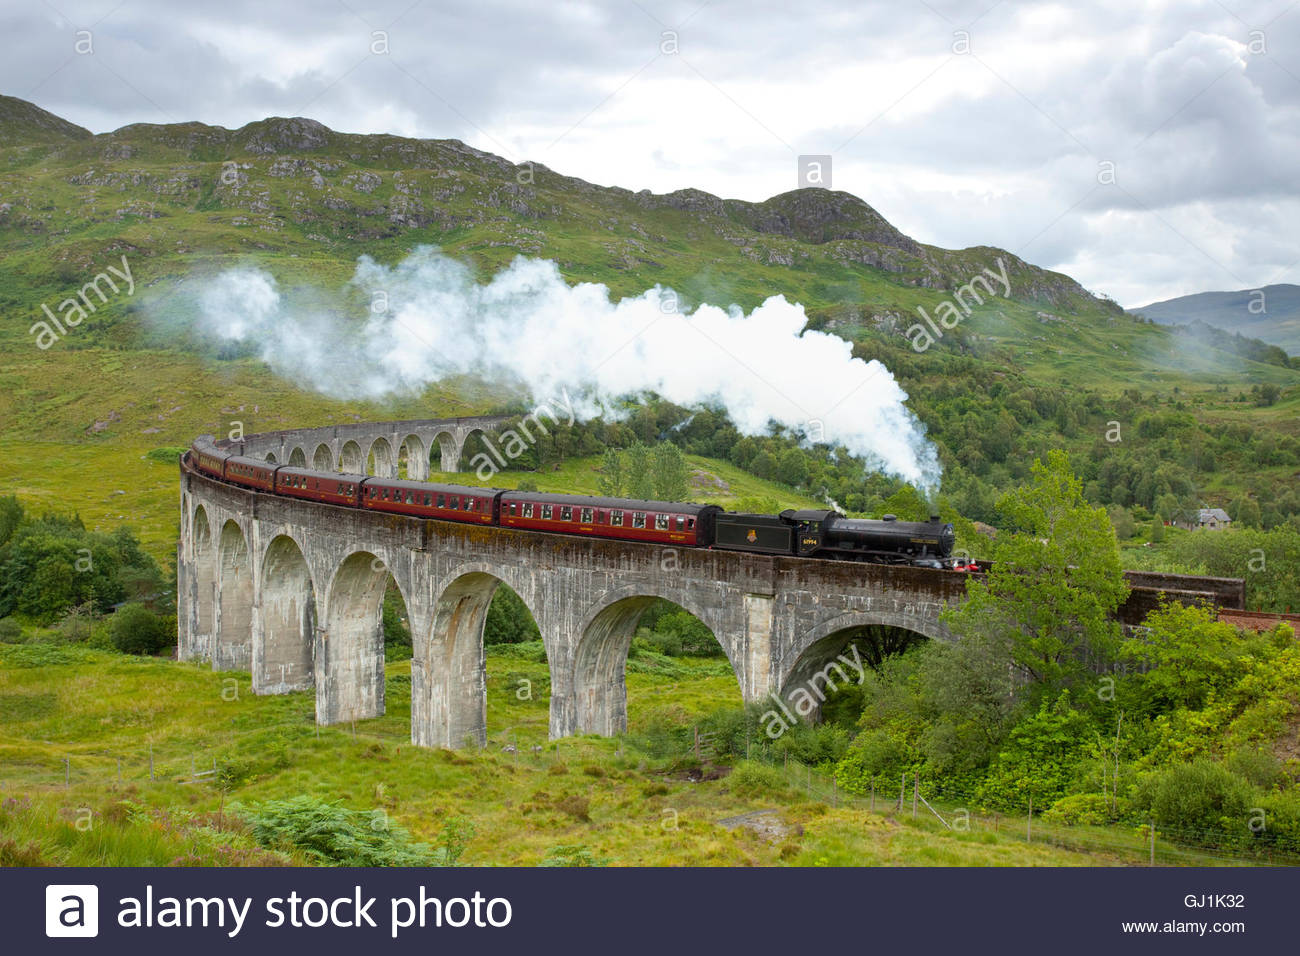 The Jacobite steam train passing over the Glenfinnan Viaduct, Lochaber, Highlands of Scotland. Stock Photo